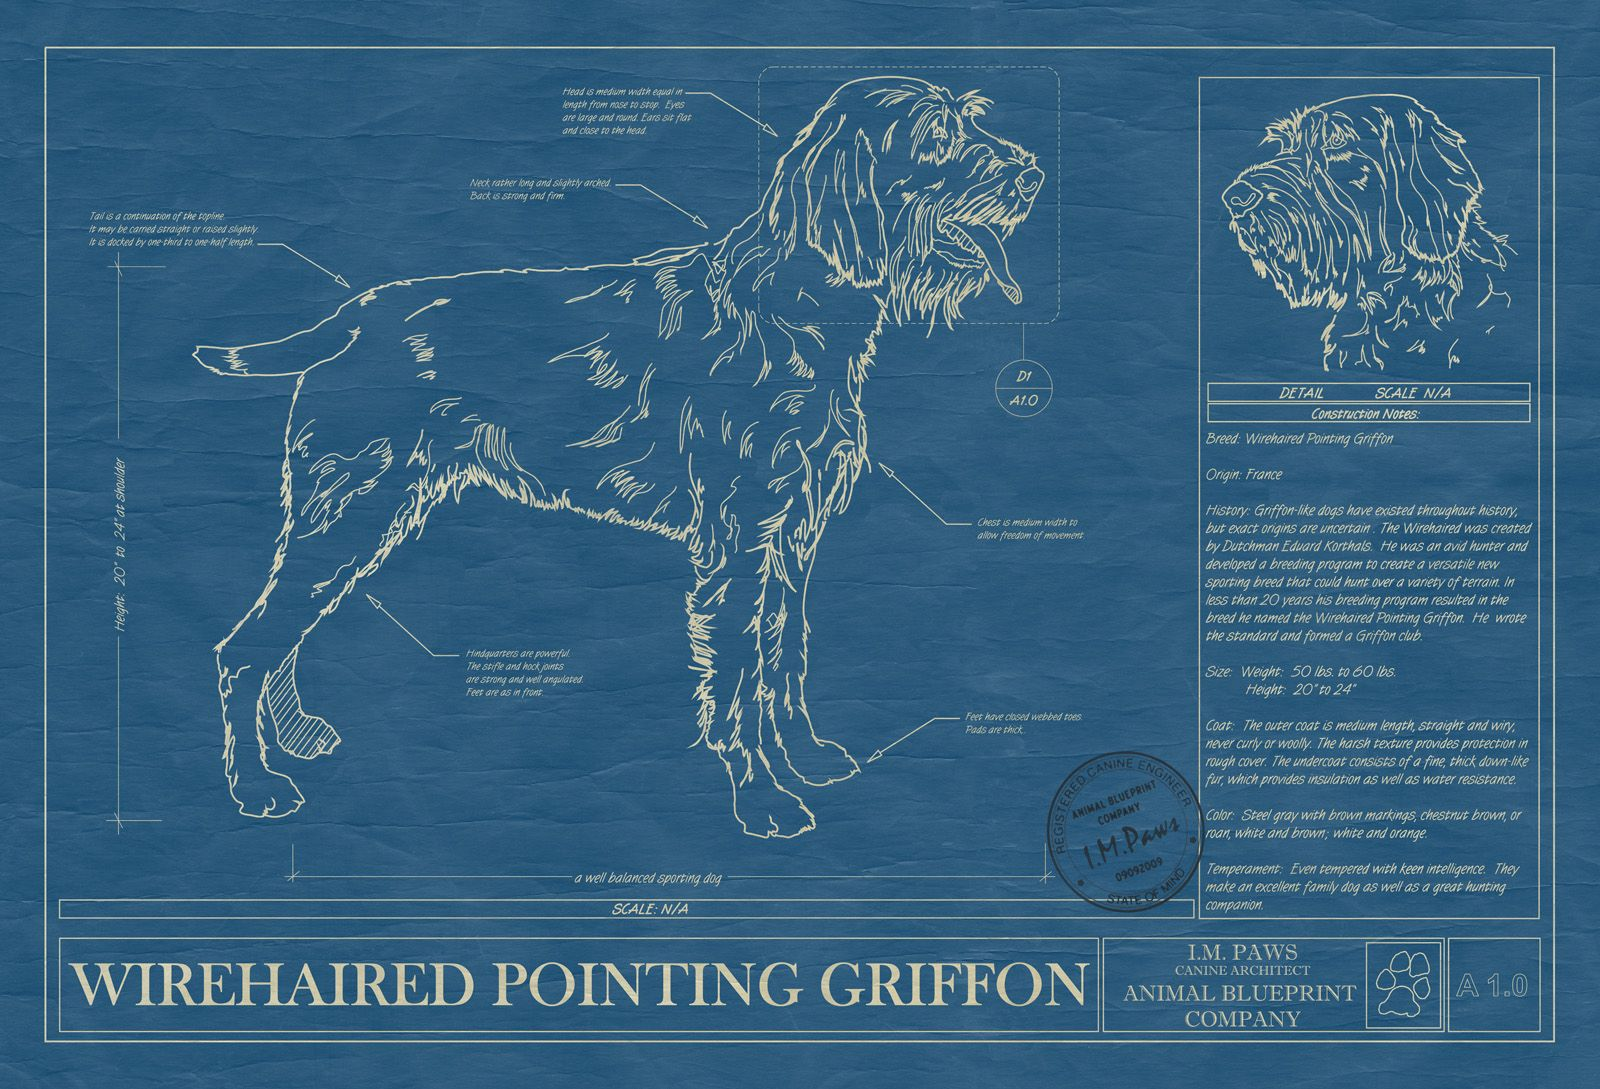 Wirehaired pointing griffon wirehaired pointing griffon unique rendered in the original format of a working blueprint this unique wall art features the malvernweather Images